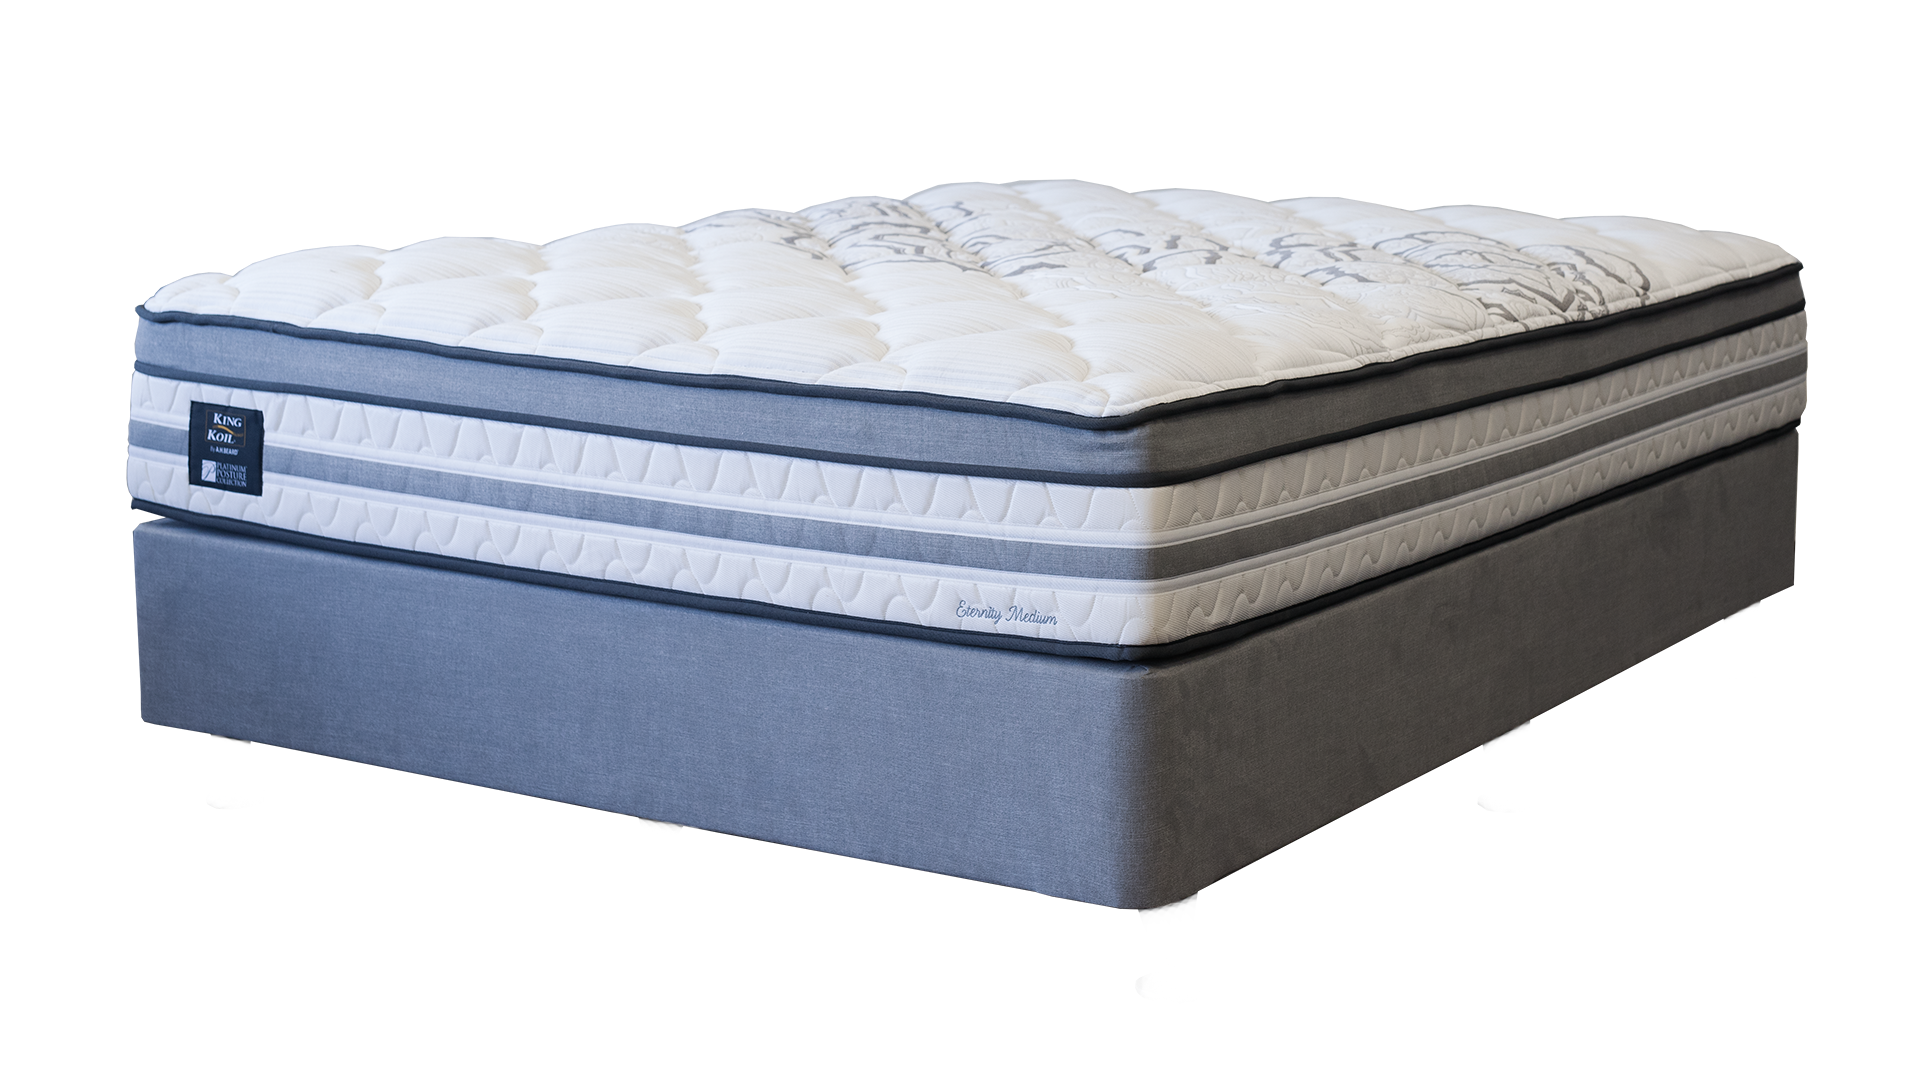 Eternity Medium Bed by King Koil